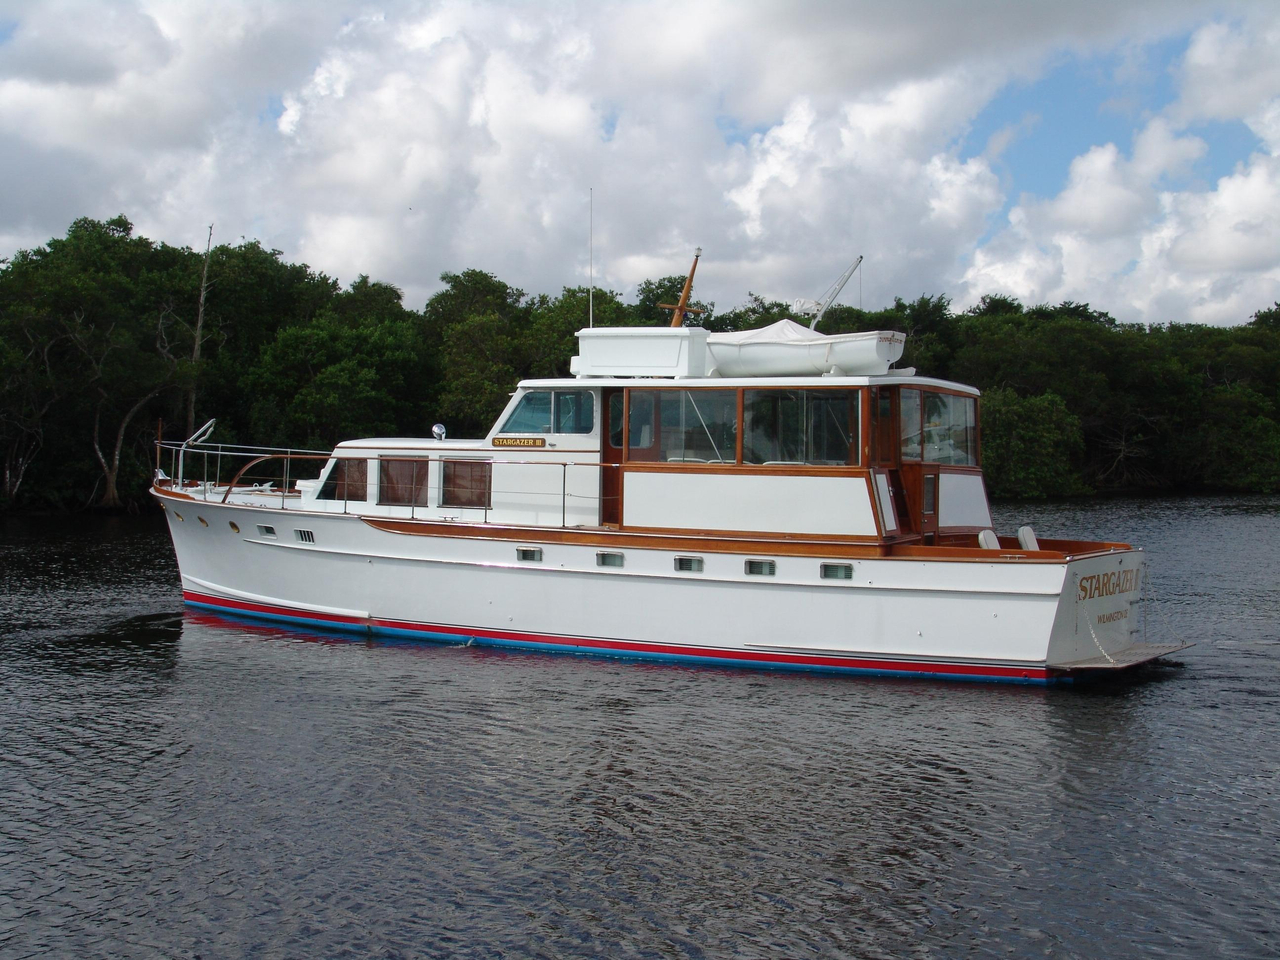 1956 used trumpy motor yacht for sale 119 500 palm for Palm beach motor yachts for sale